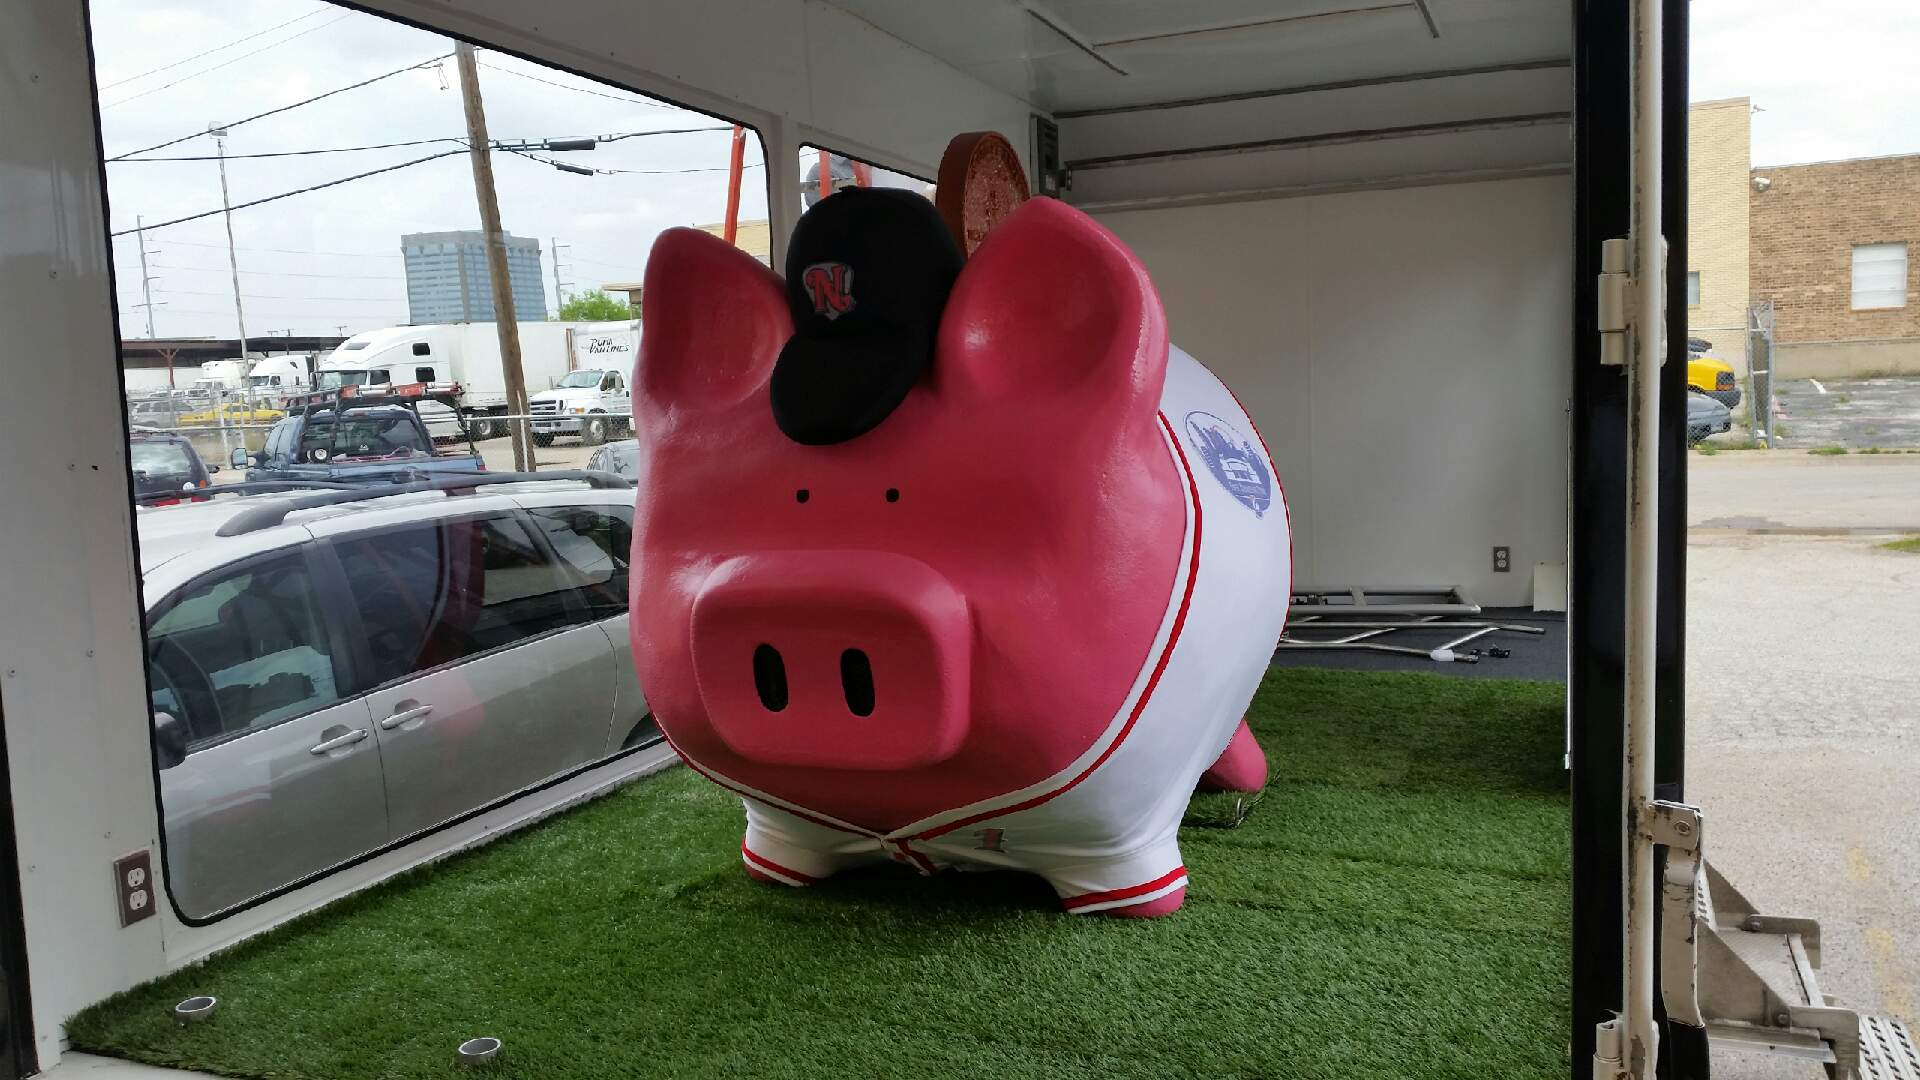 Huge pink pig – the pig was a mascot for a bank. His name was Hamilton and the bank wanted him to be dressed in the baseball uniform of the local triple A team.